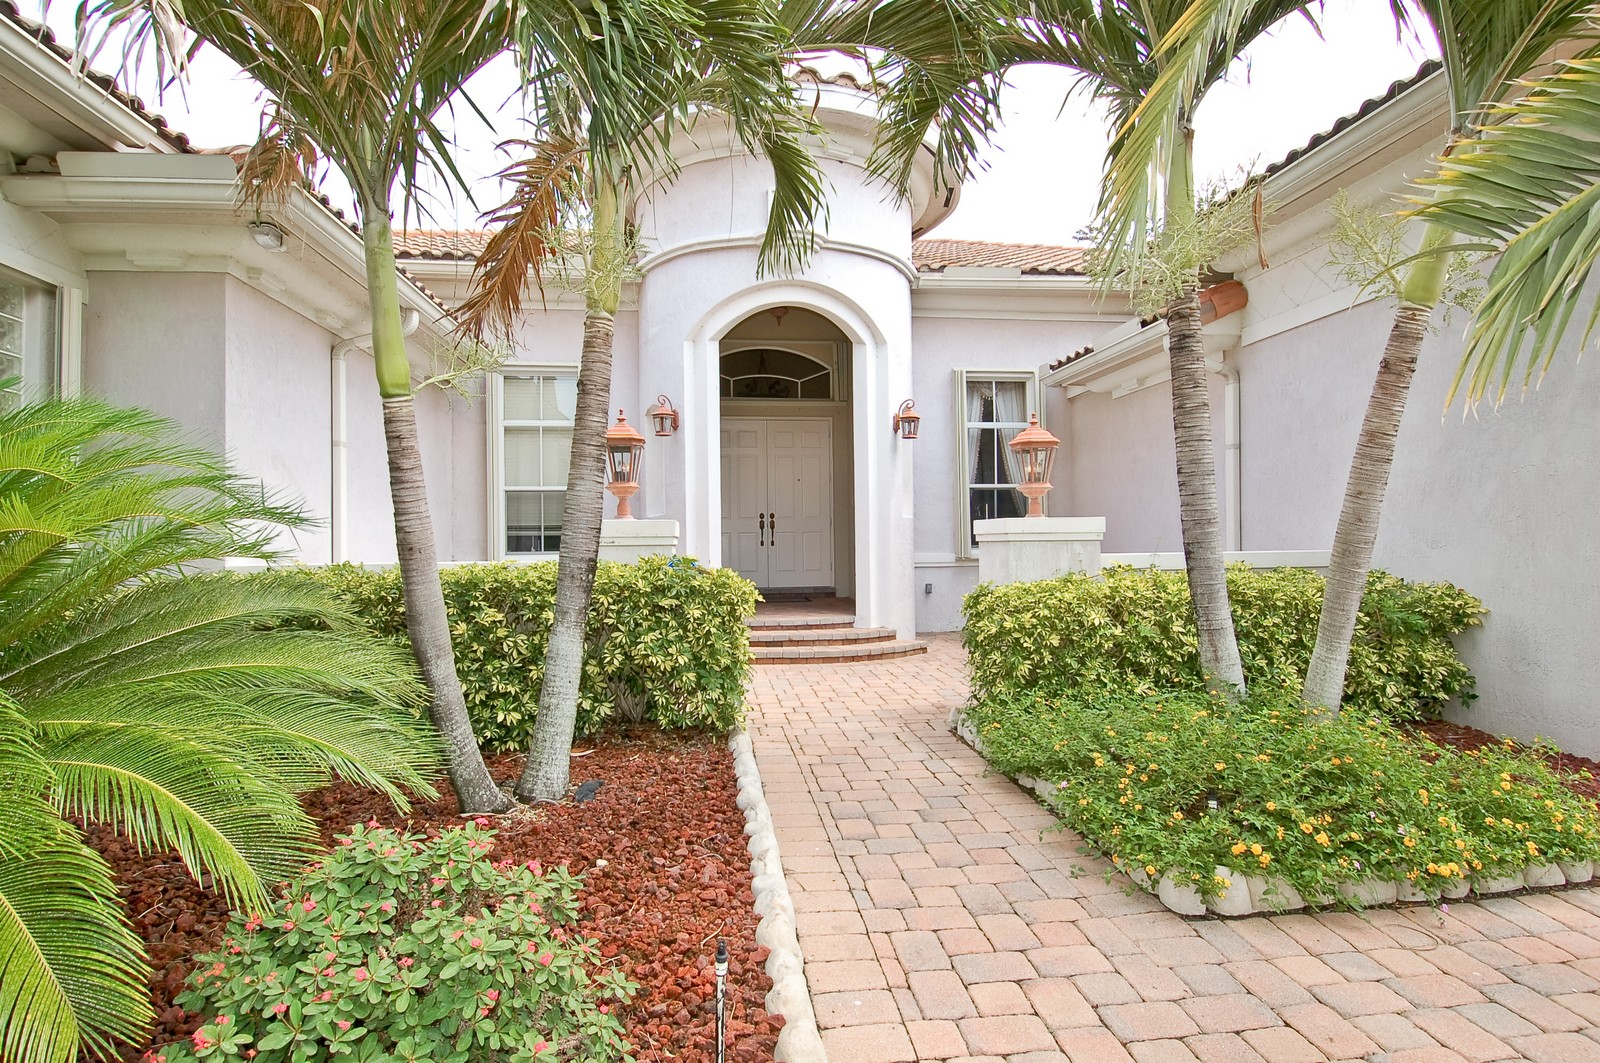 Real Estate Photography - 11687 NW 69th Pl, Parkland, FL, 33076 - aceveofront.jpeg